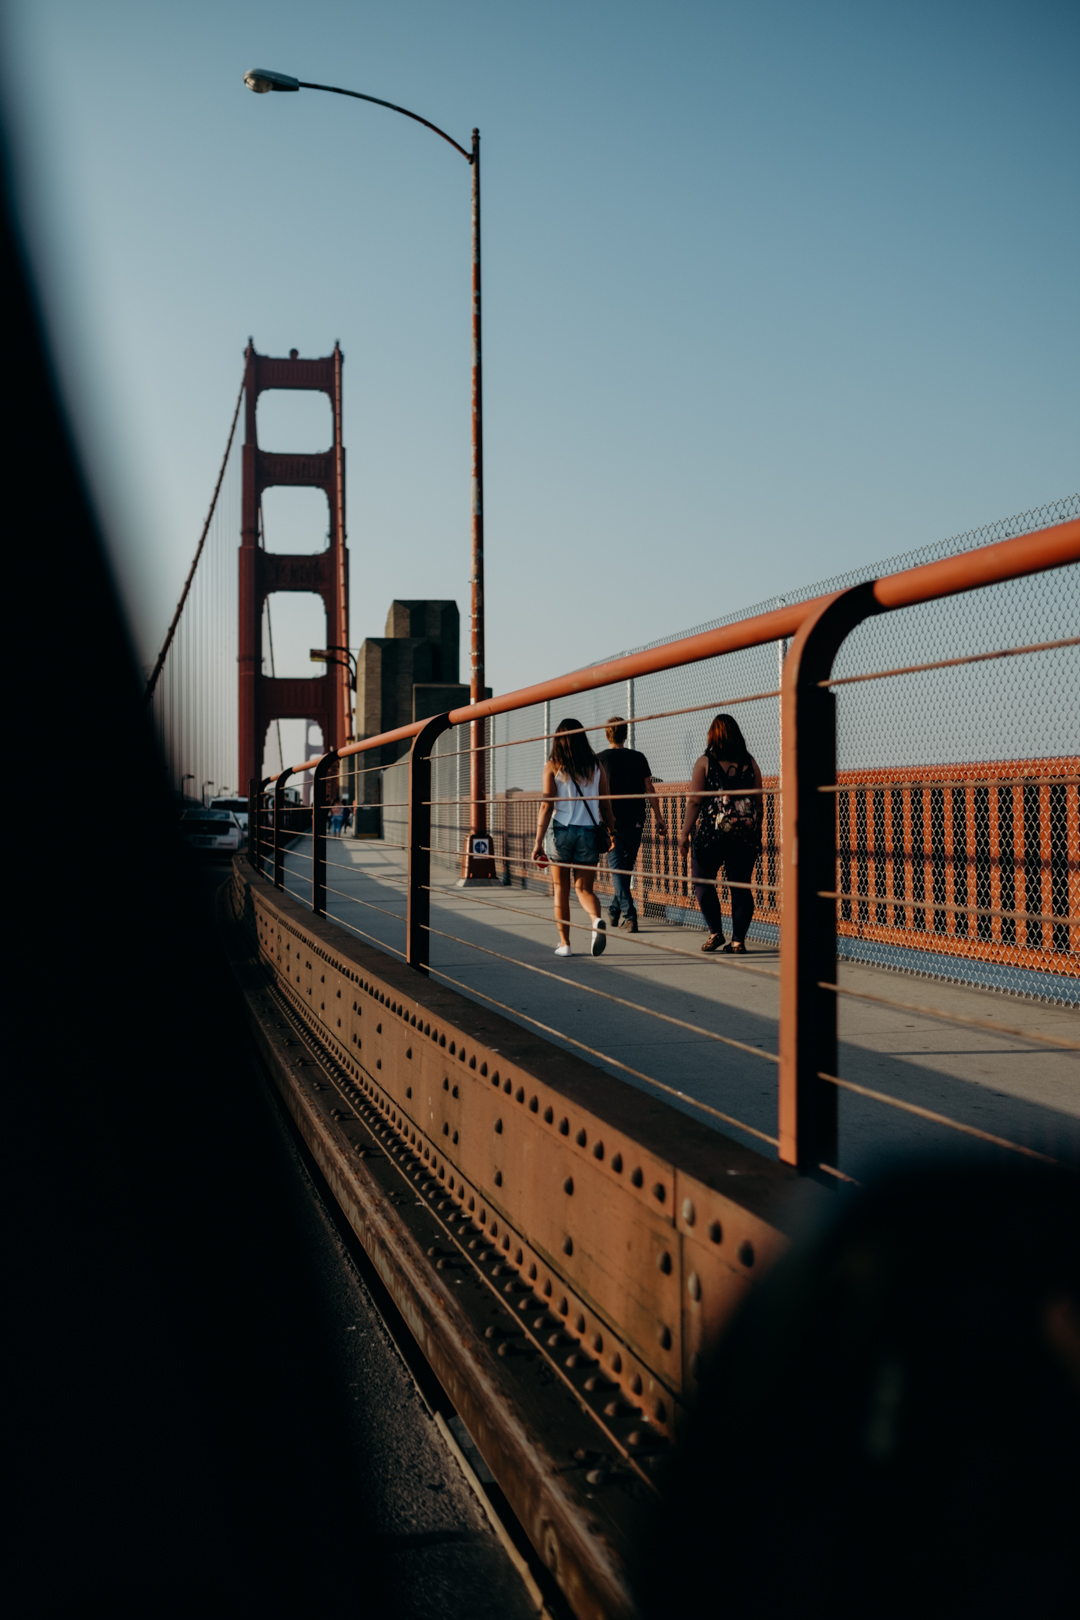 20170831_San Francisco Travel Blog_2.jpg